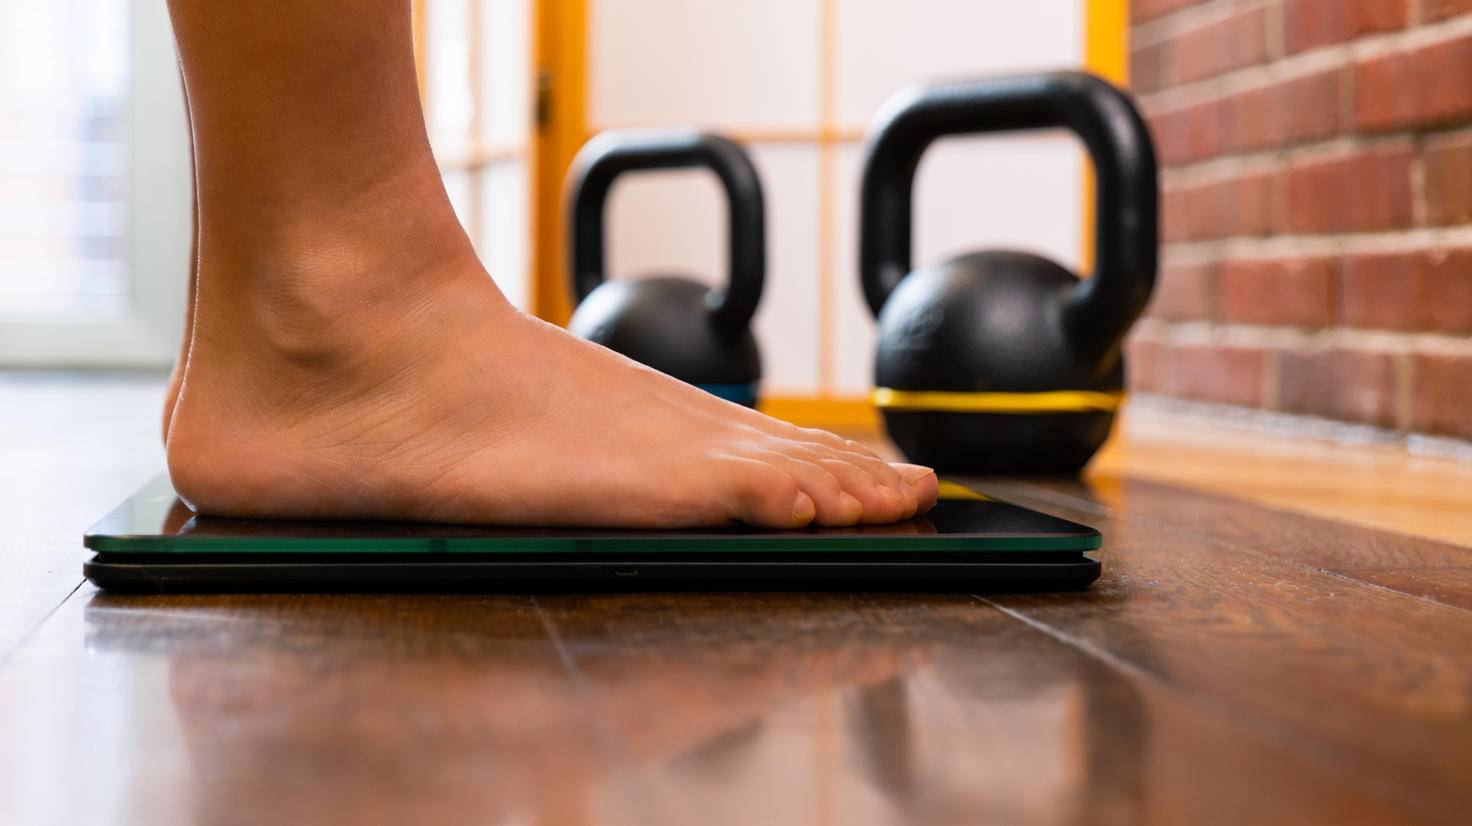 Important: Enter the scales barefoot, which must be on a level and firm surface.